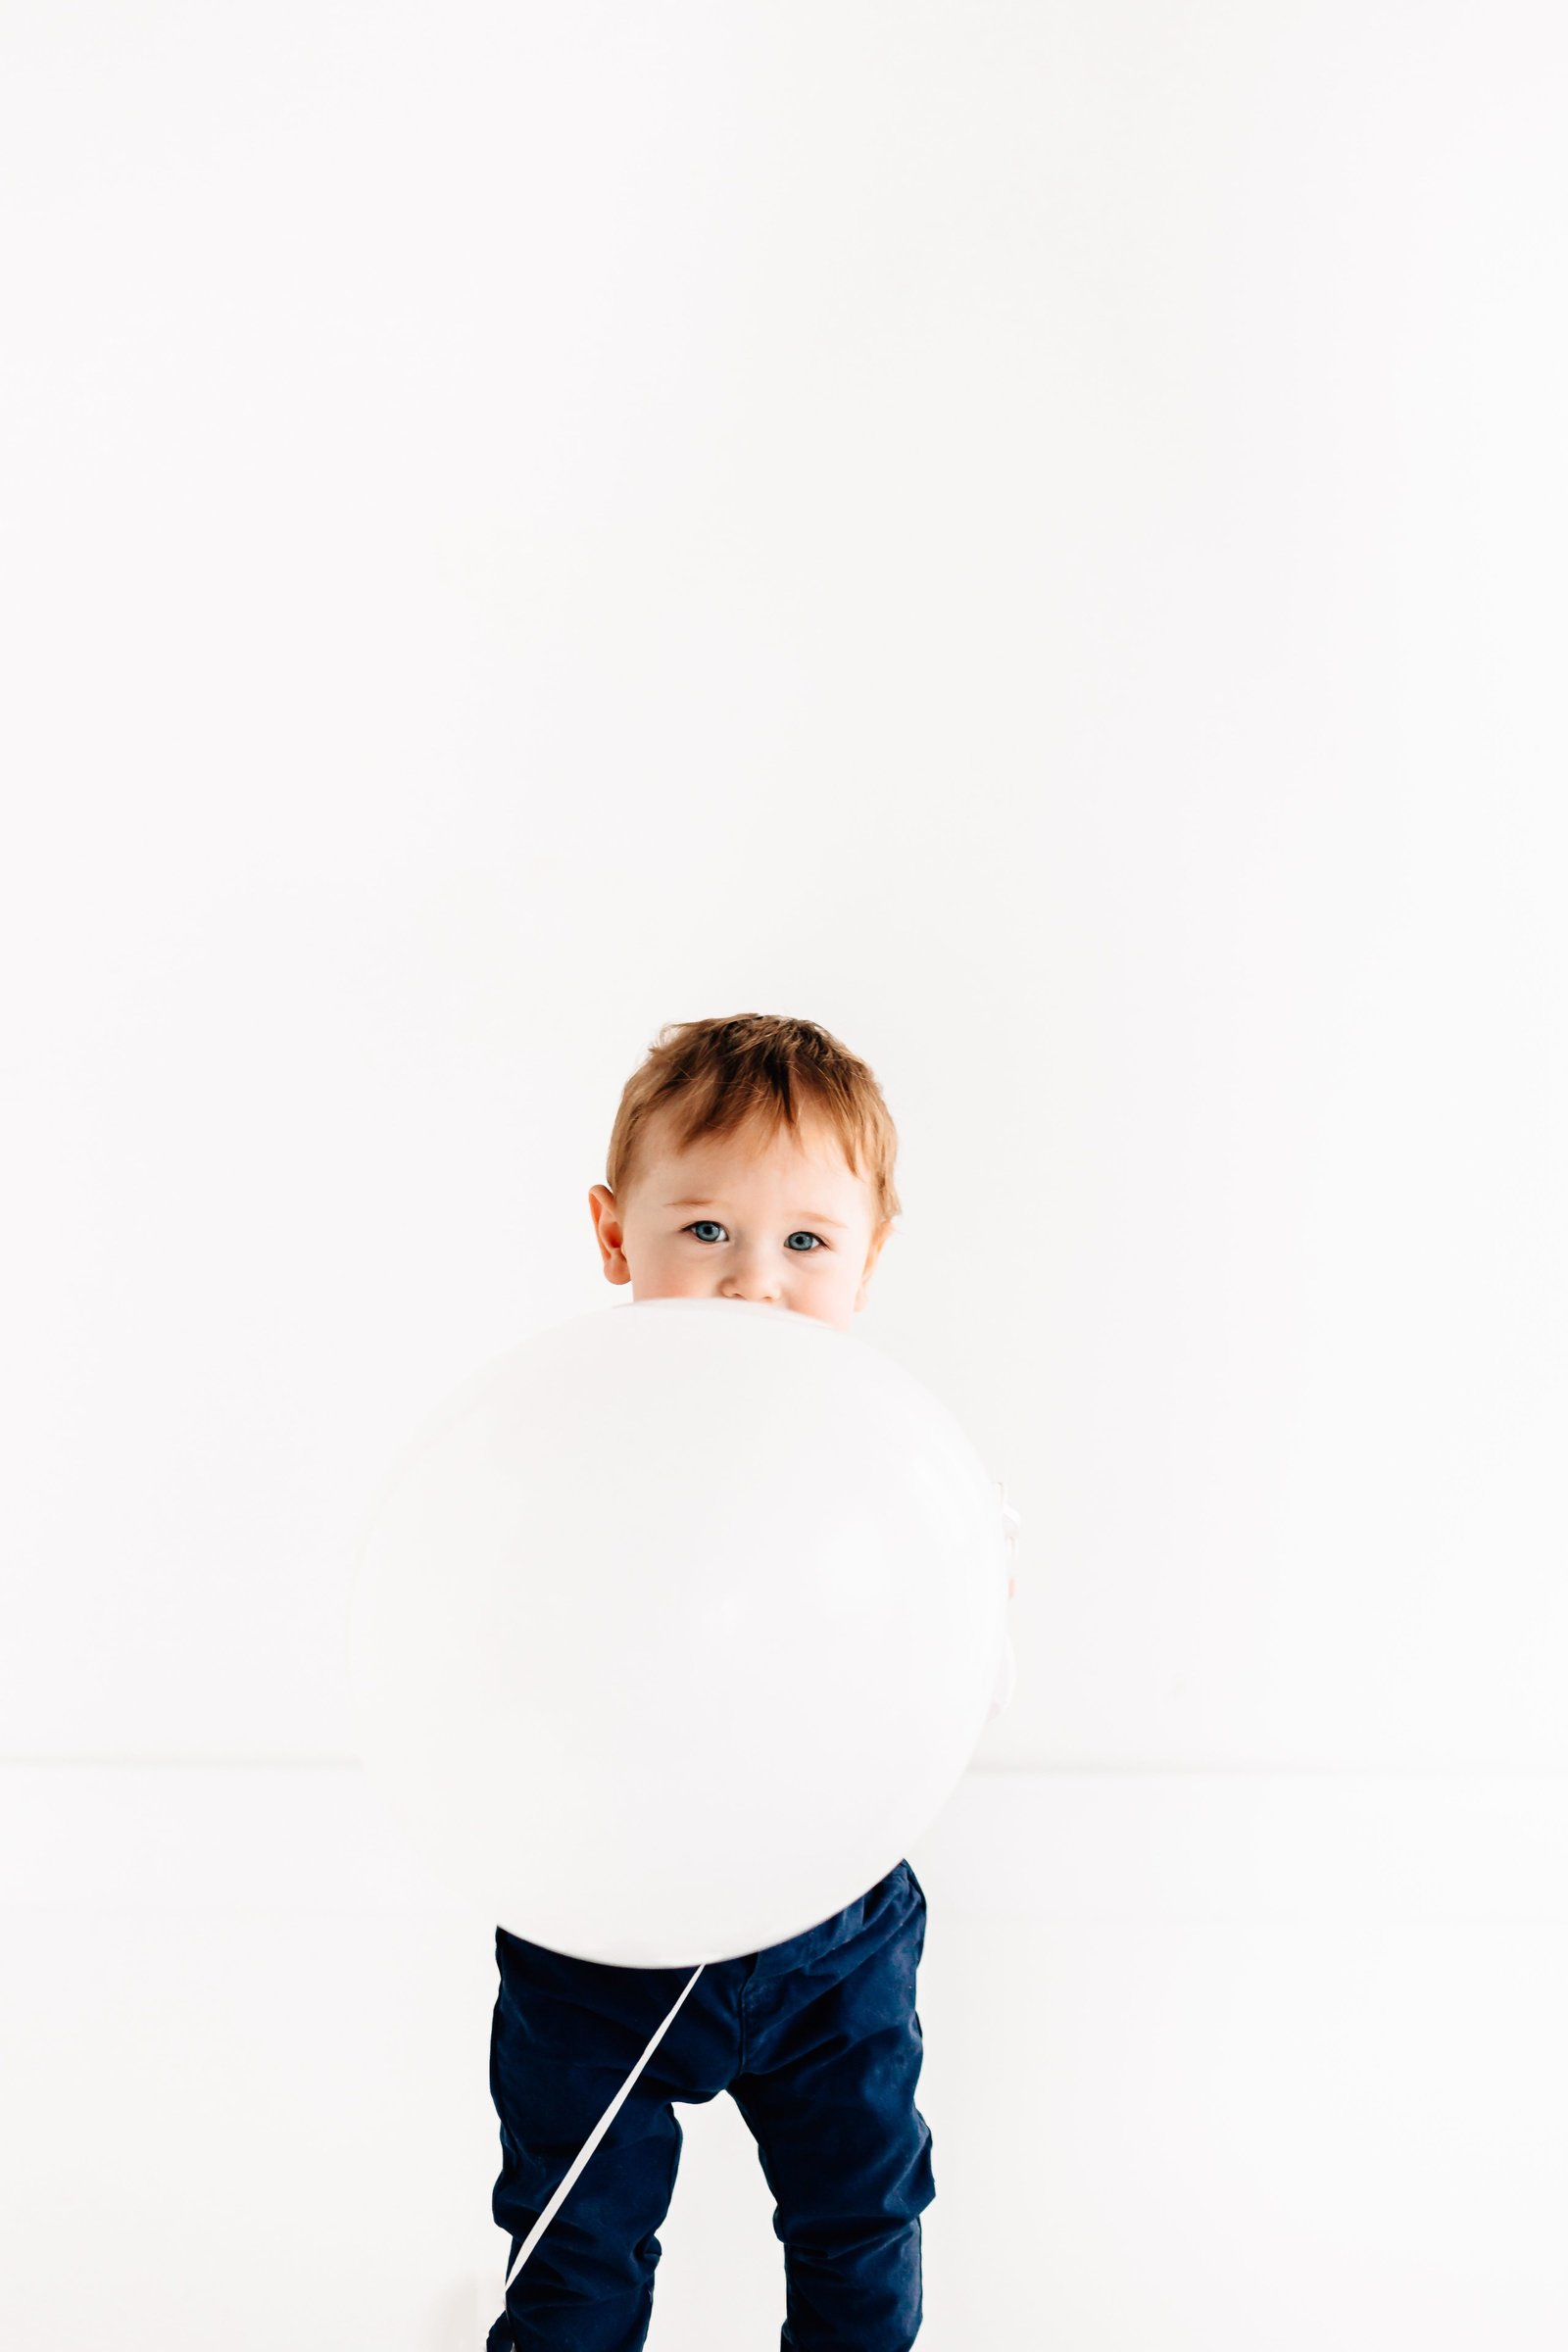 St_Louis_Baby_Photographer_Kelly_Laramore_Photography_25